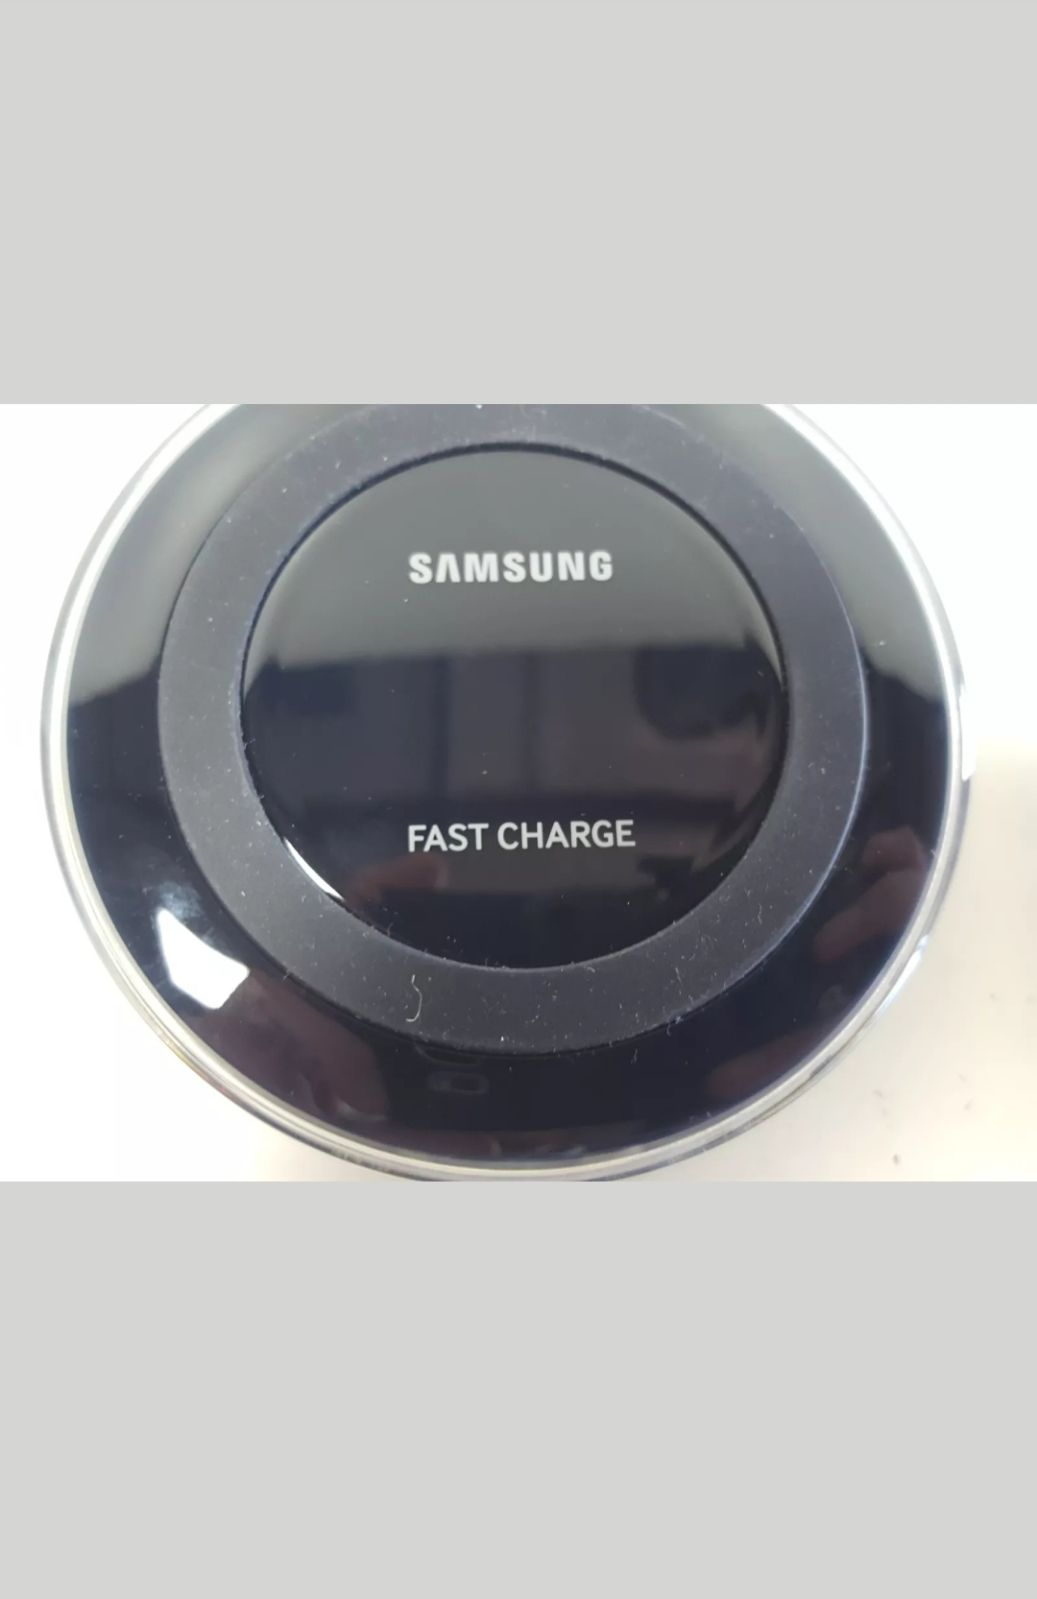 Samsung PAD CHARGER WIRELESS Puck w/USB